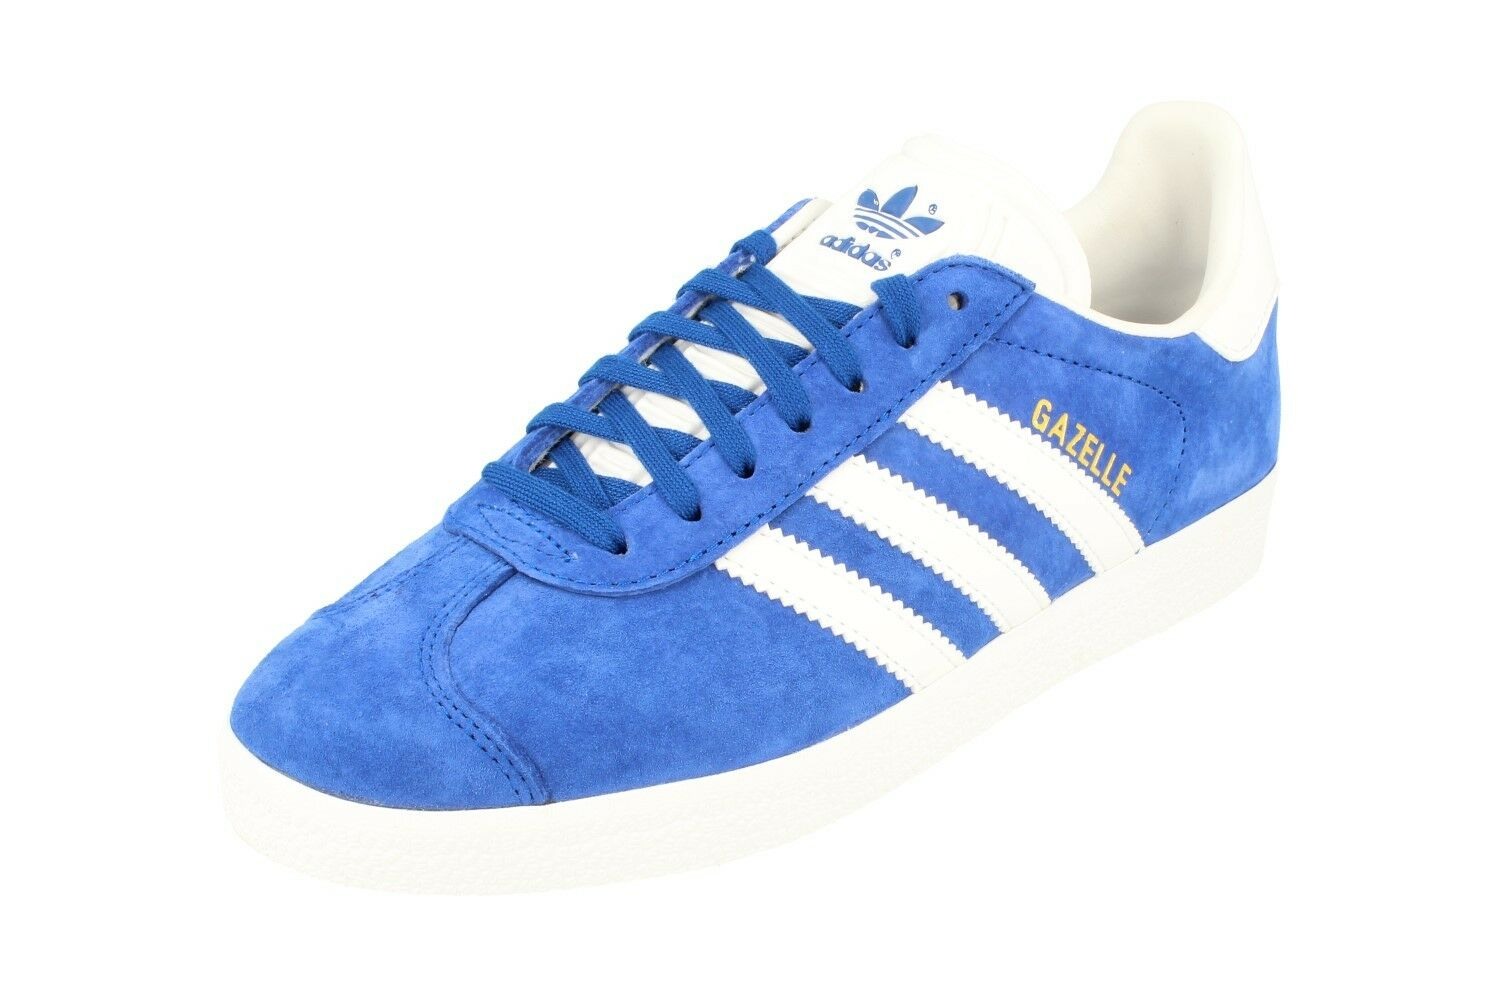 Adidas Originals S76227 Gazelle Zapatillas Hombre Zapatillas S76227 Originals 47cf44